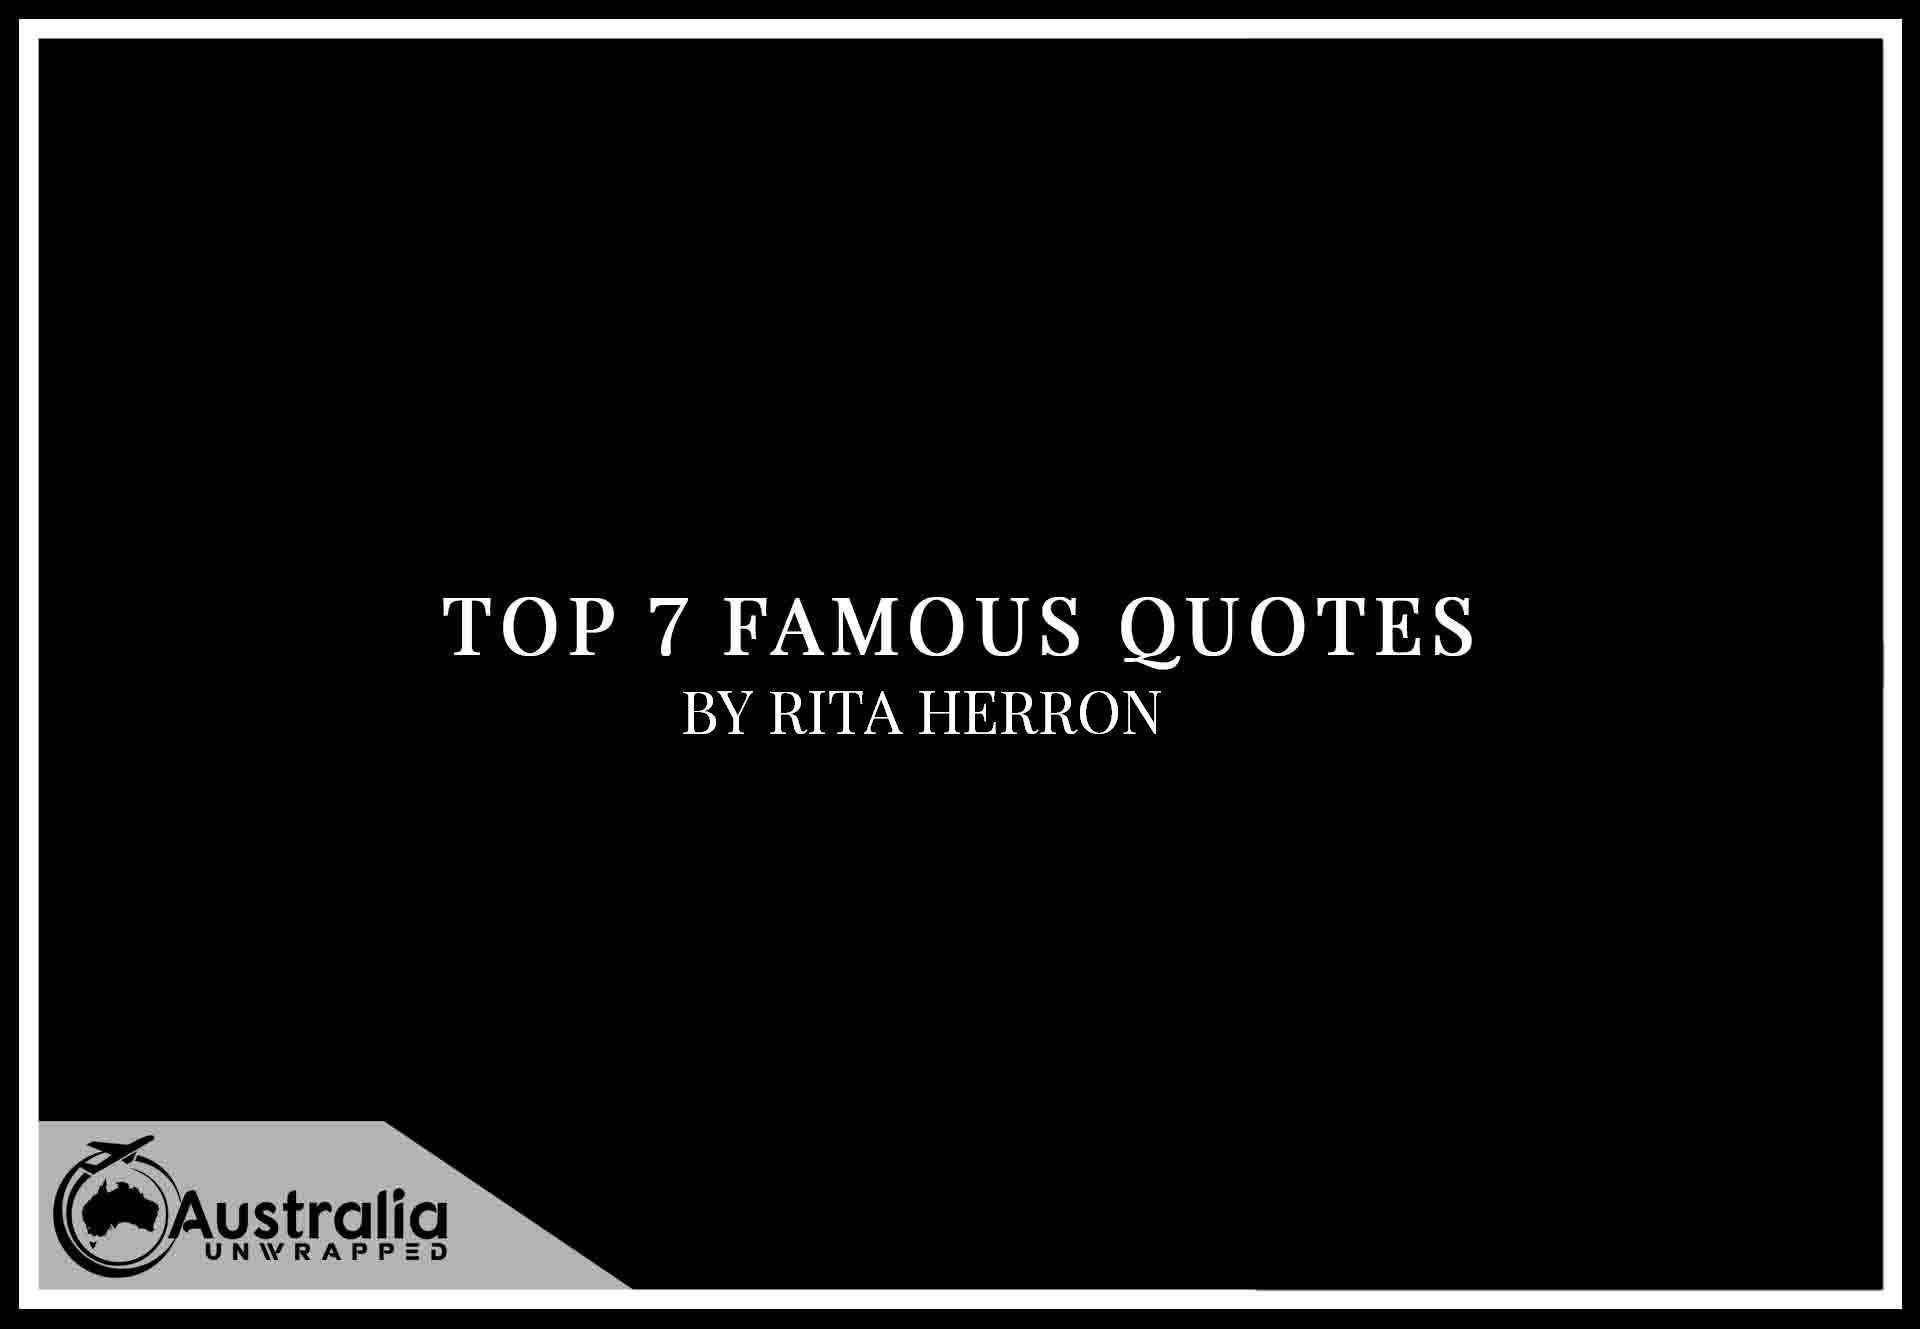 Top 7 Famous Quotes by Author Rita Herron